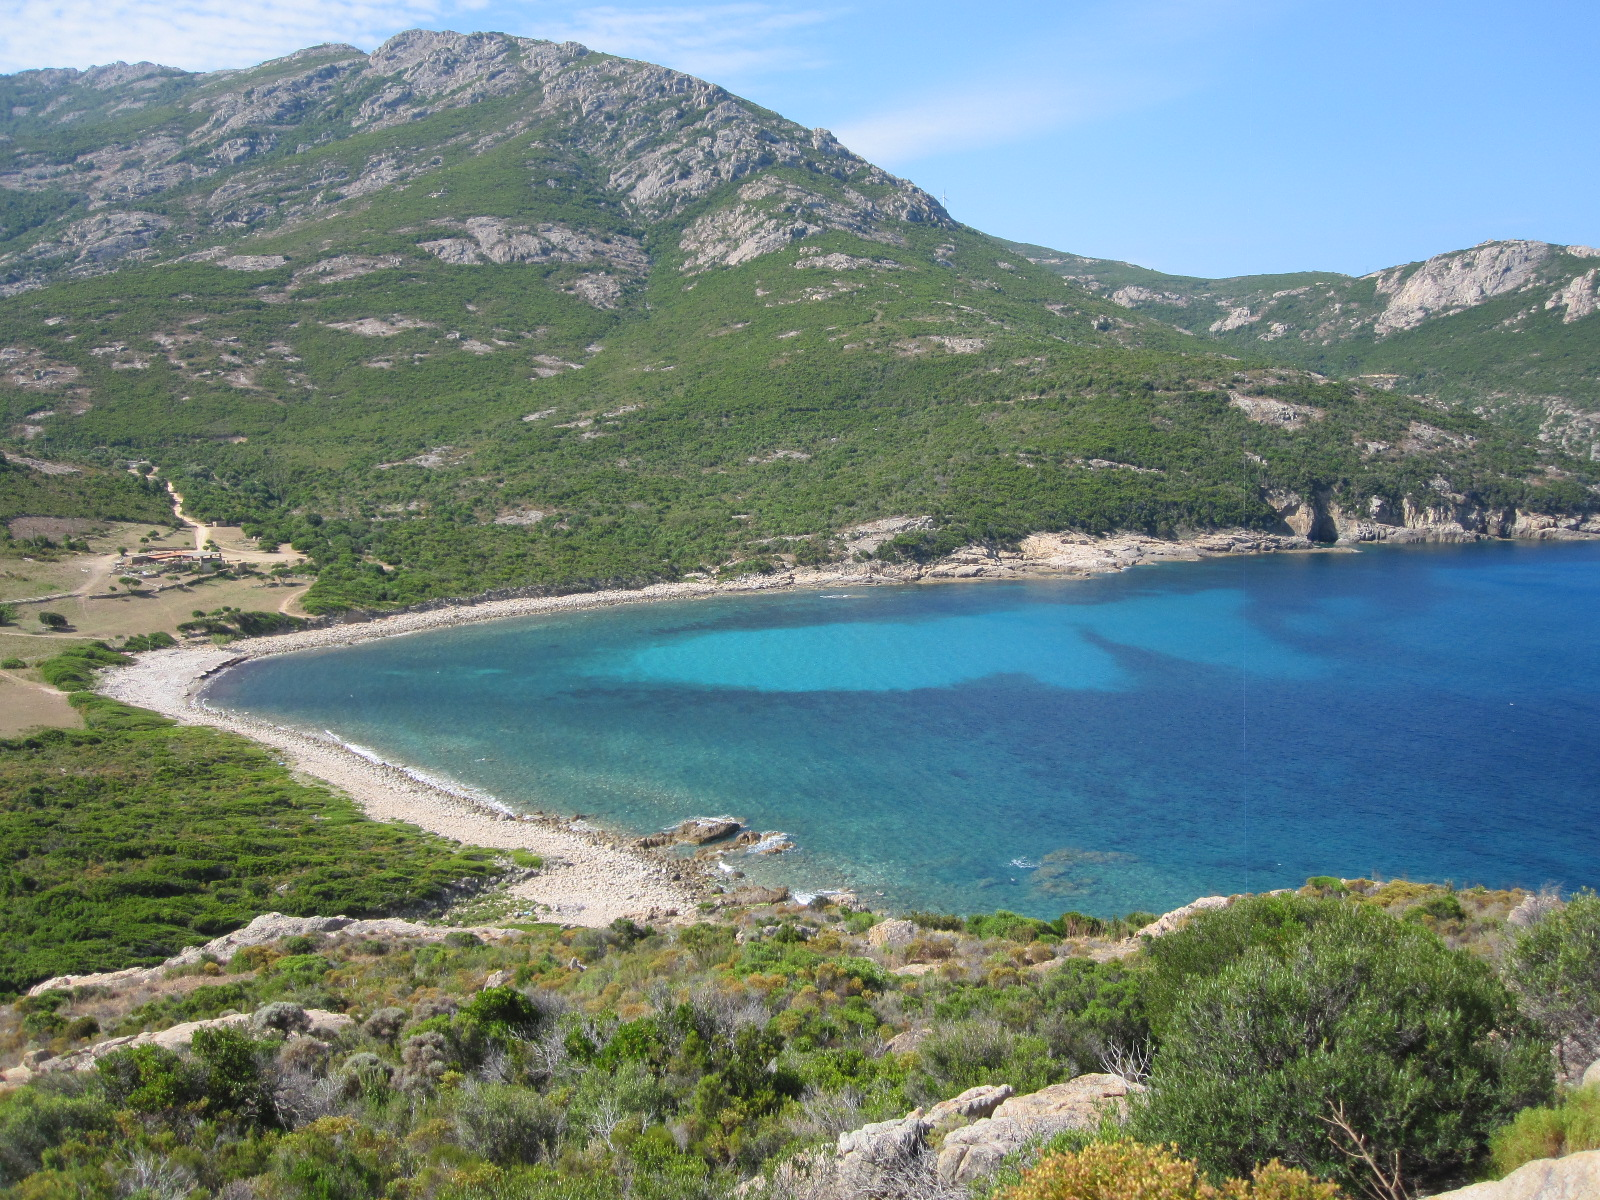 On our way to Ile Rousse. Clear bay views like this make it hard to carry on and not stop right HERE for the day!